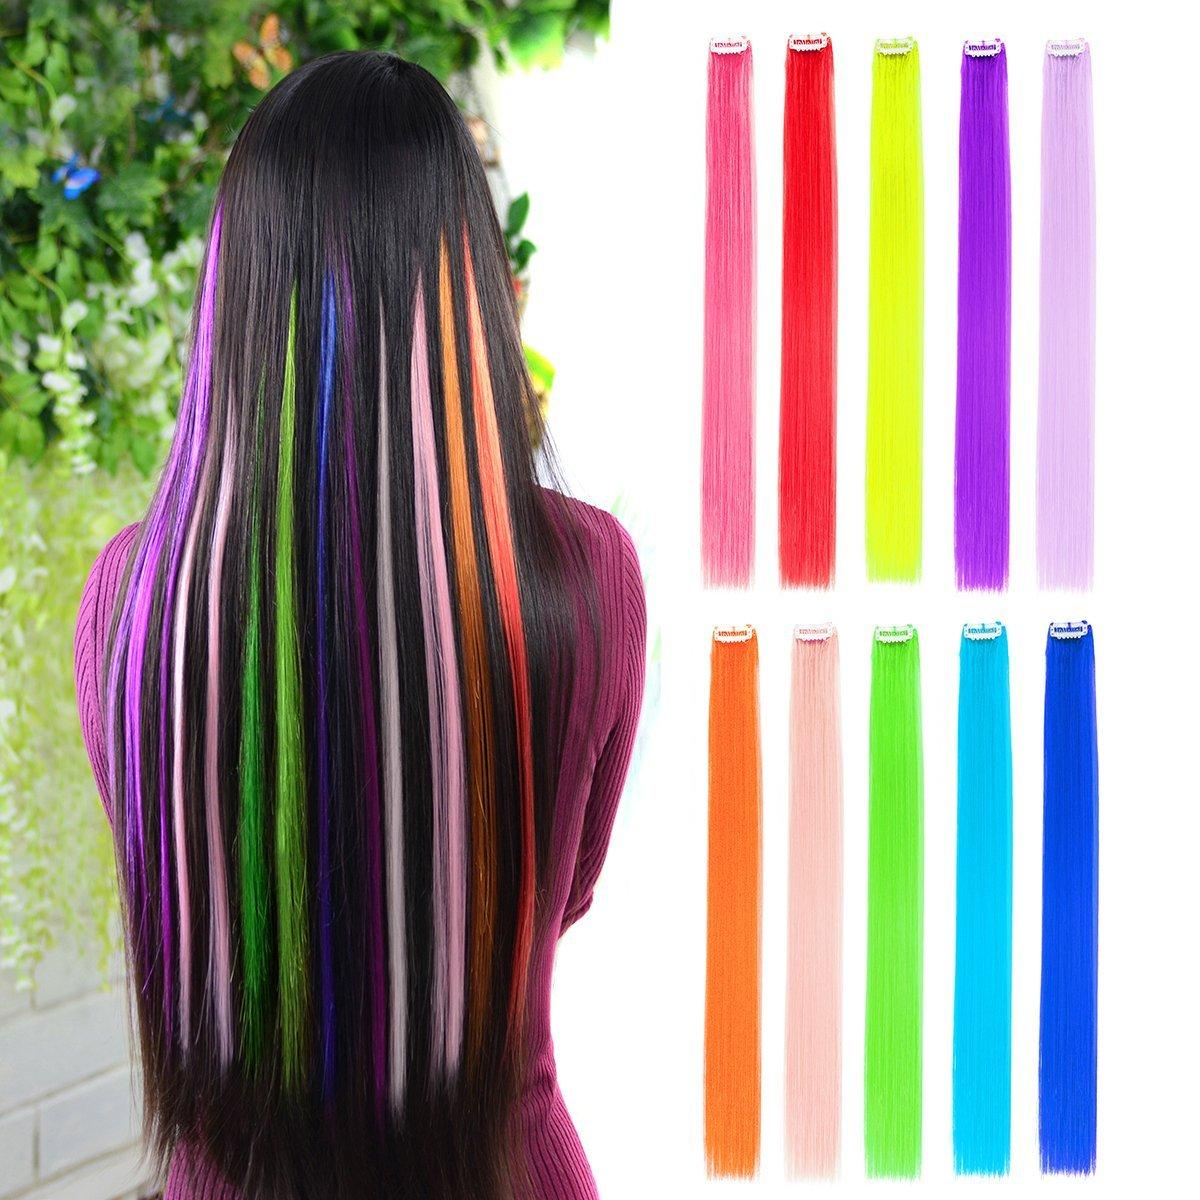 Colored Clip In Hair Extensions 22 Straight Fashion Hairpieces For